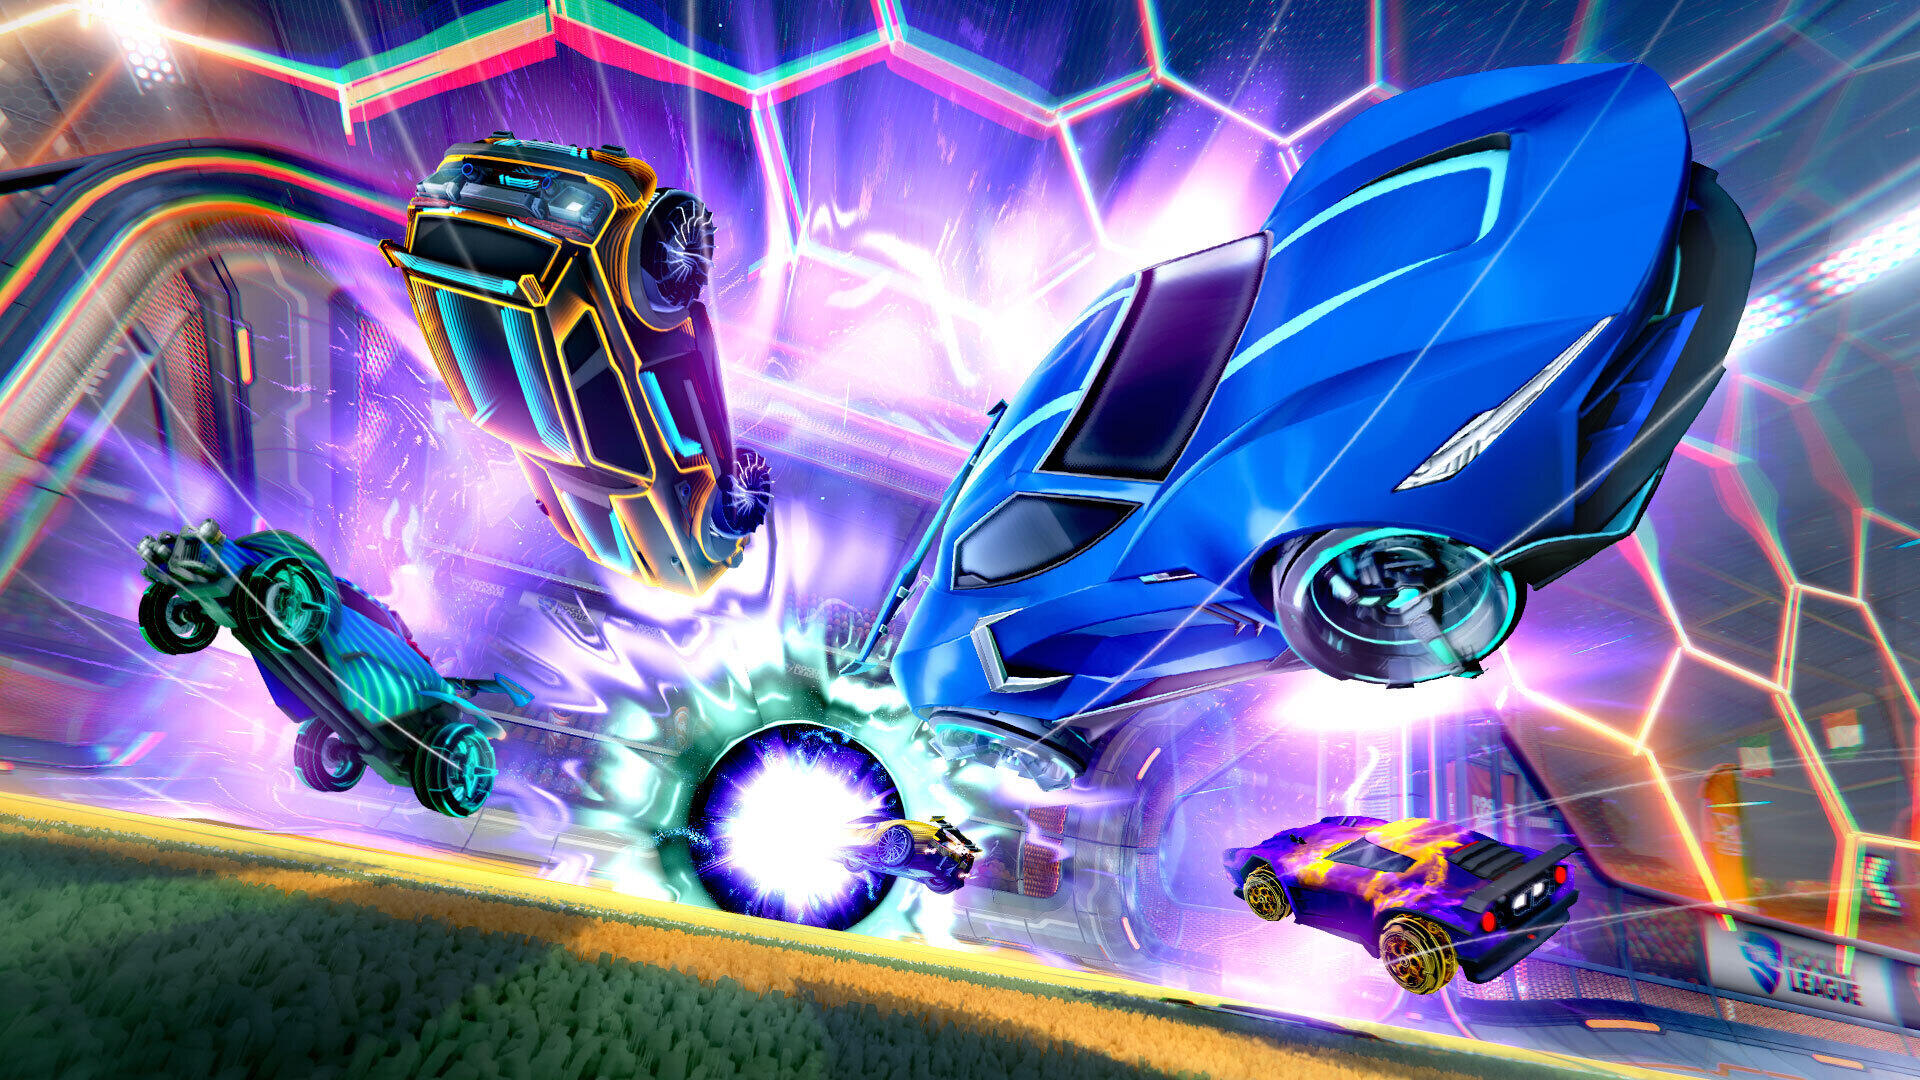 Cómo descargar Rocket League gratis en PS4, Switch, Xbox One y PC